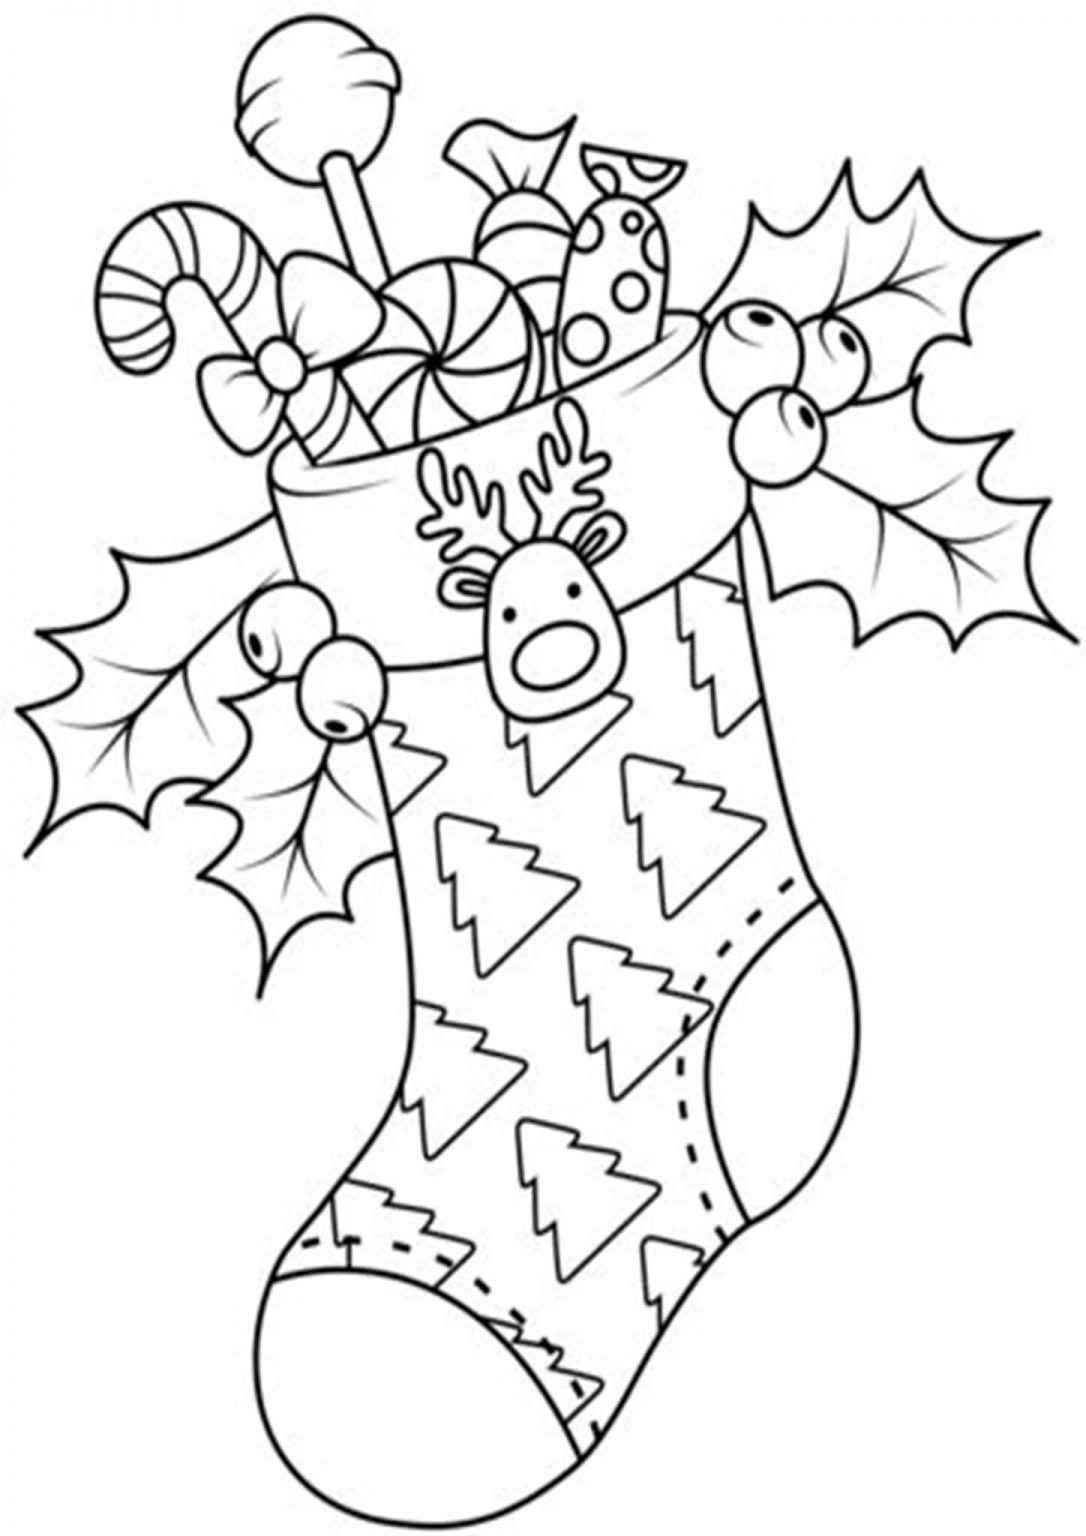 Christmas Stocking Coloring Pages For Kids Printable Christmas Coloring Pages Printable Christmas Stocking Christmas Coloring Pages